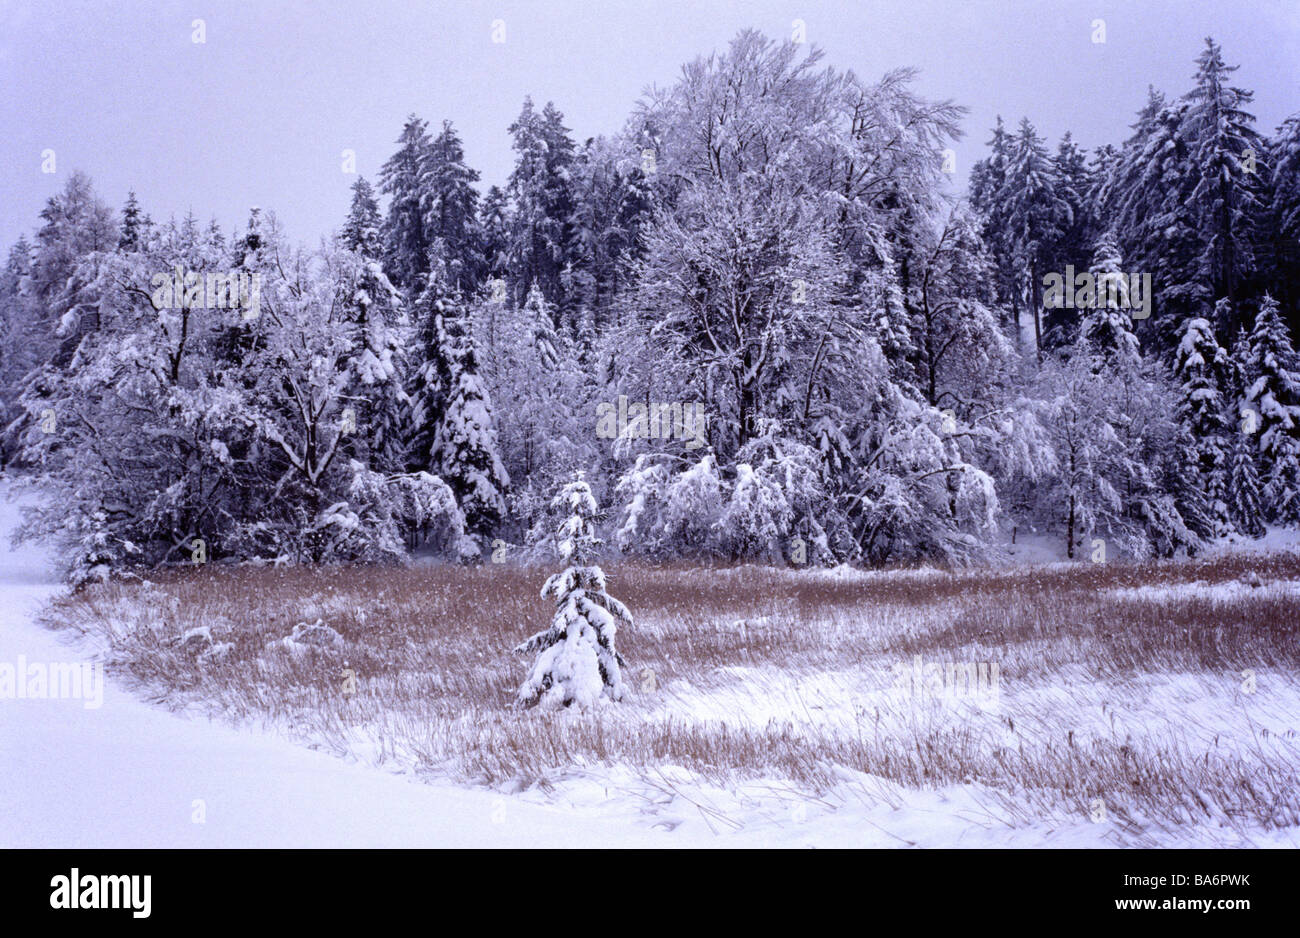 Winter-forest winter-landscape landscape forest trees plants snow-covered  gotten snowed in snow cold season winters wintry